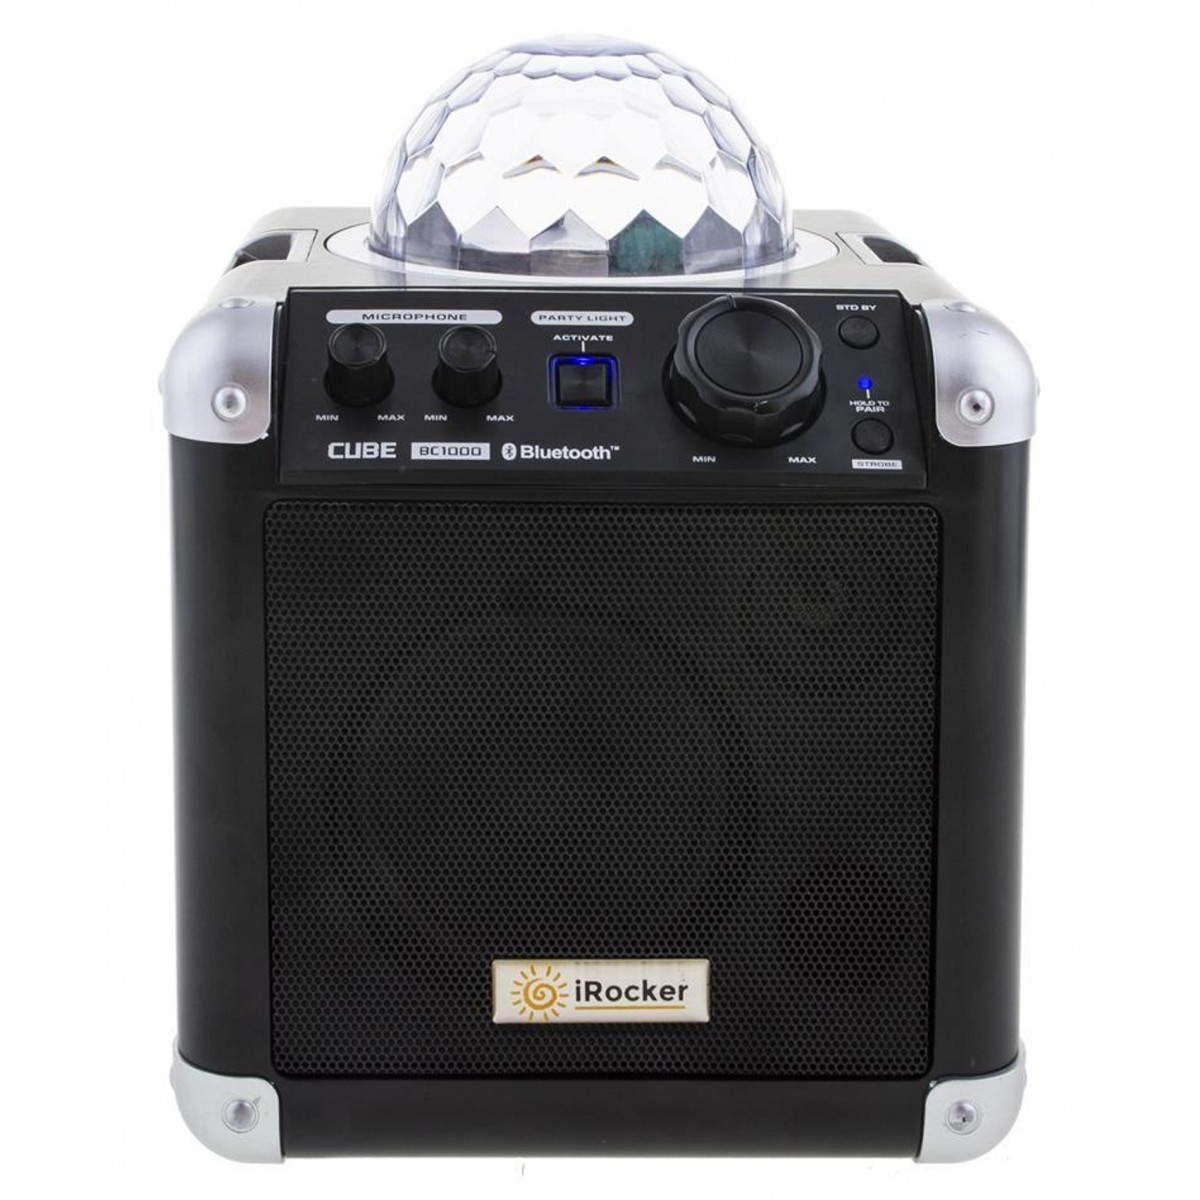 Sing Cube amplificatore bluetooth con luce